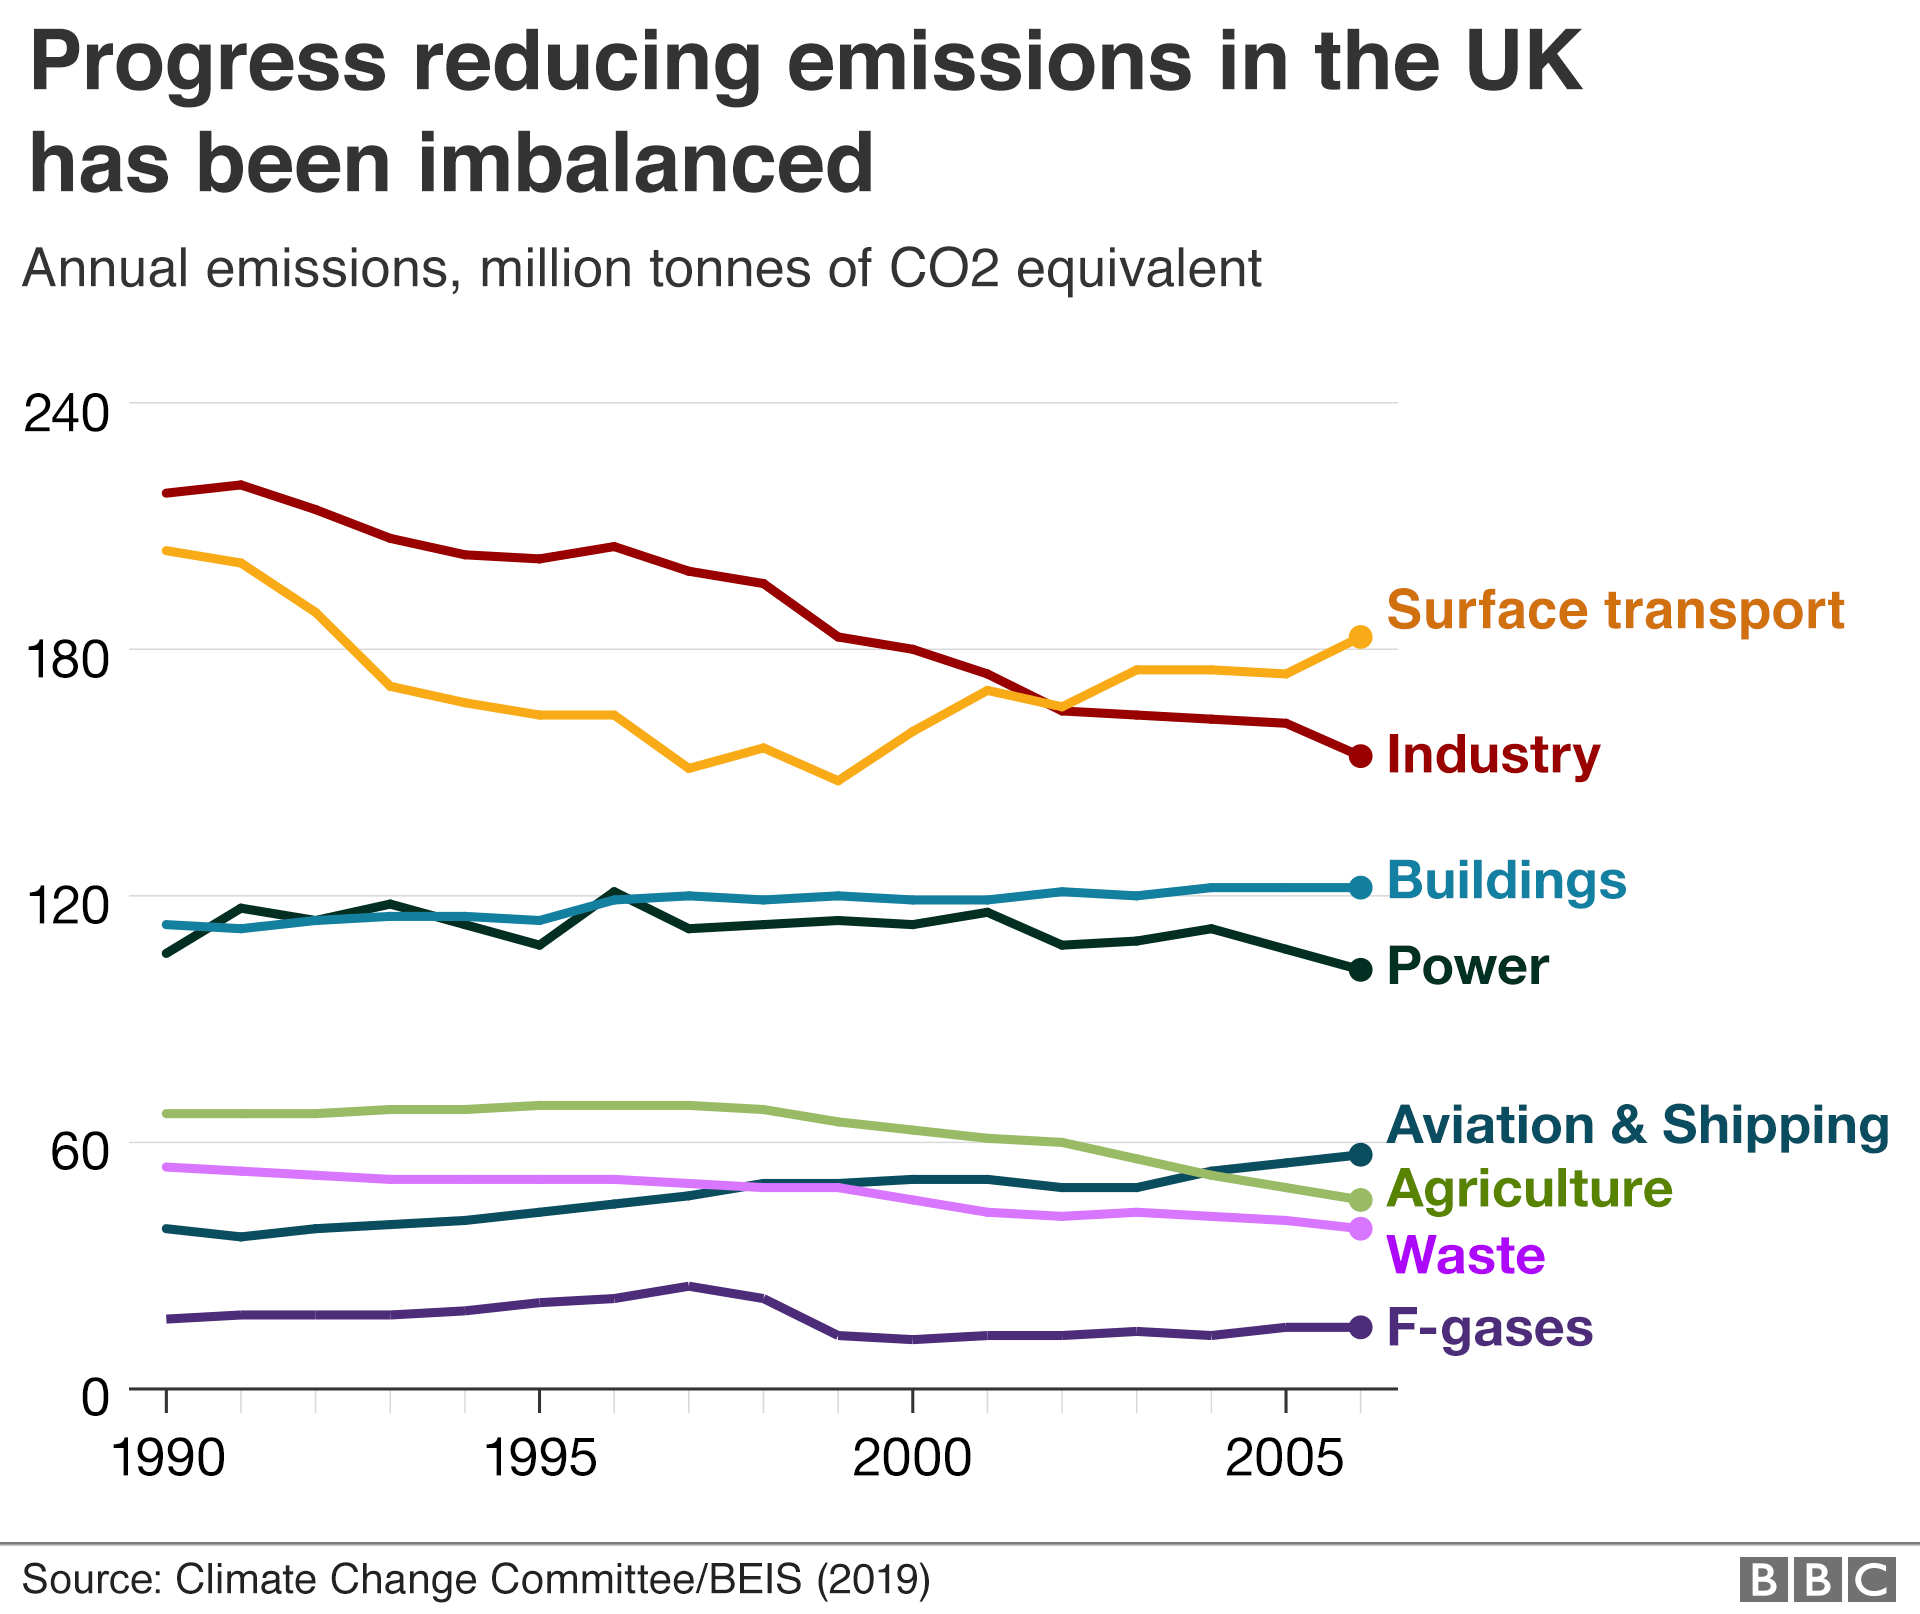 Chart showing progress in reducing emissions across different sectors.